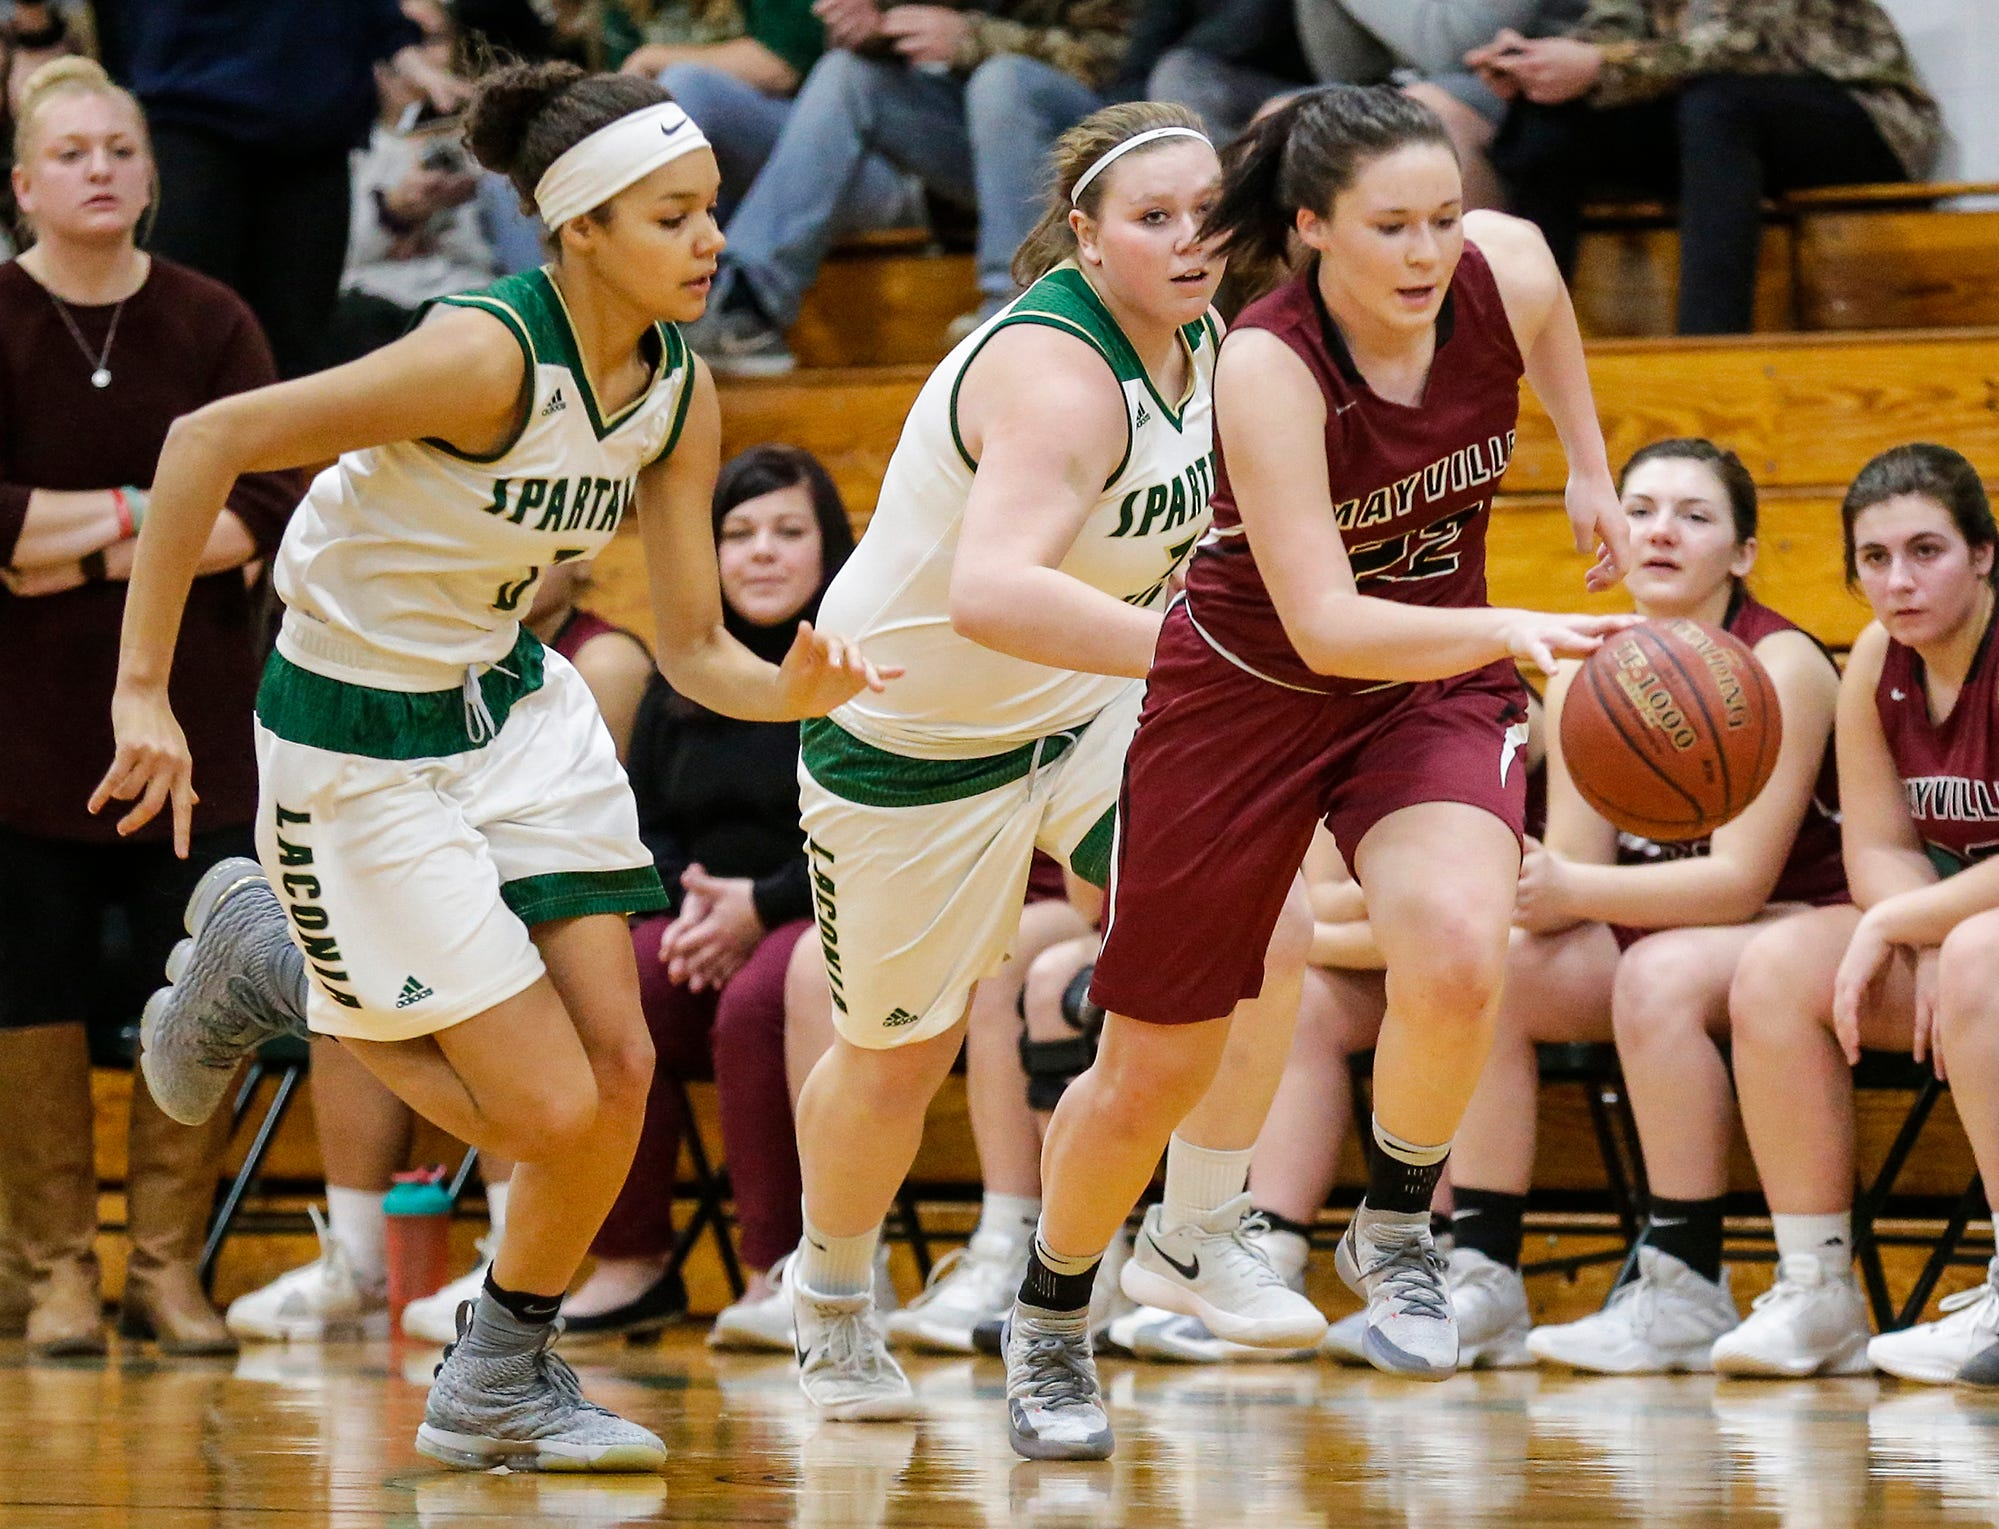 Mayville High School girls basketball's Reannah Zimmer works the ball down the court away from Laconia High School's Kiarra Otto and Abby Luczak during their game Friday, November 30, 2018 in Rosendale. Doug Raflik/USA TODAY NETWORK-Wisconsin